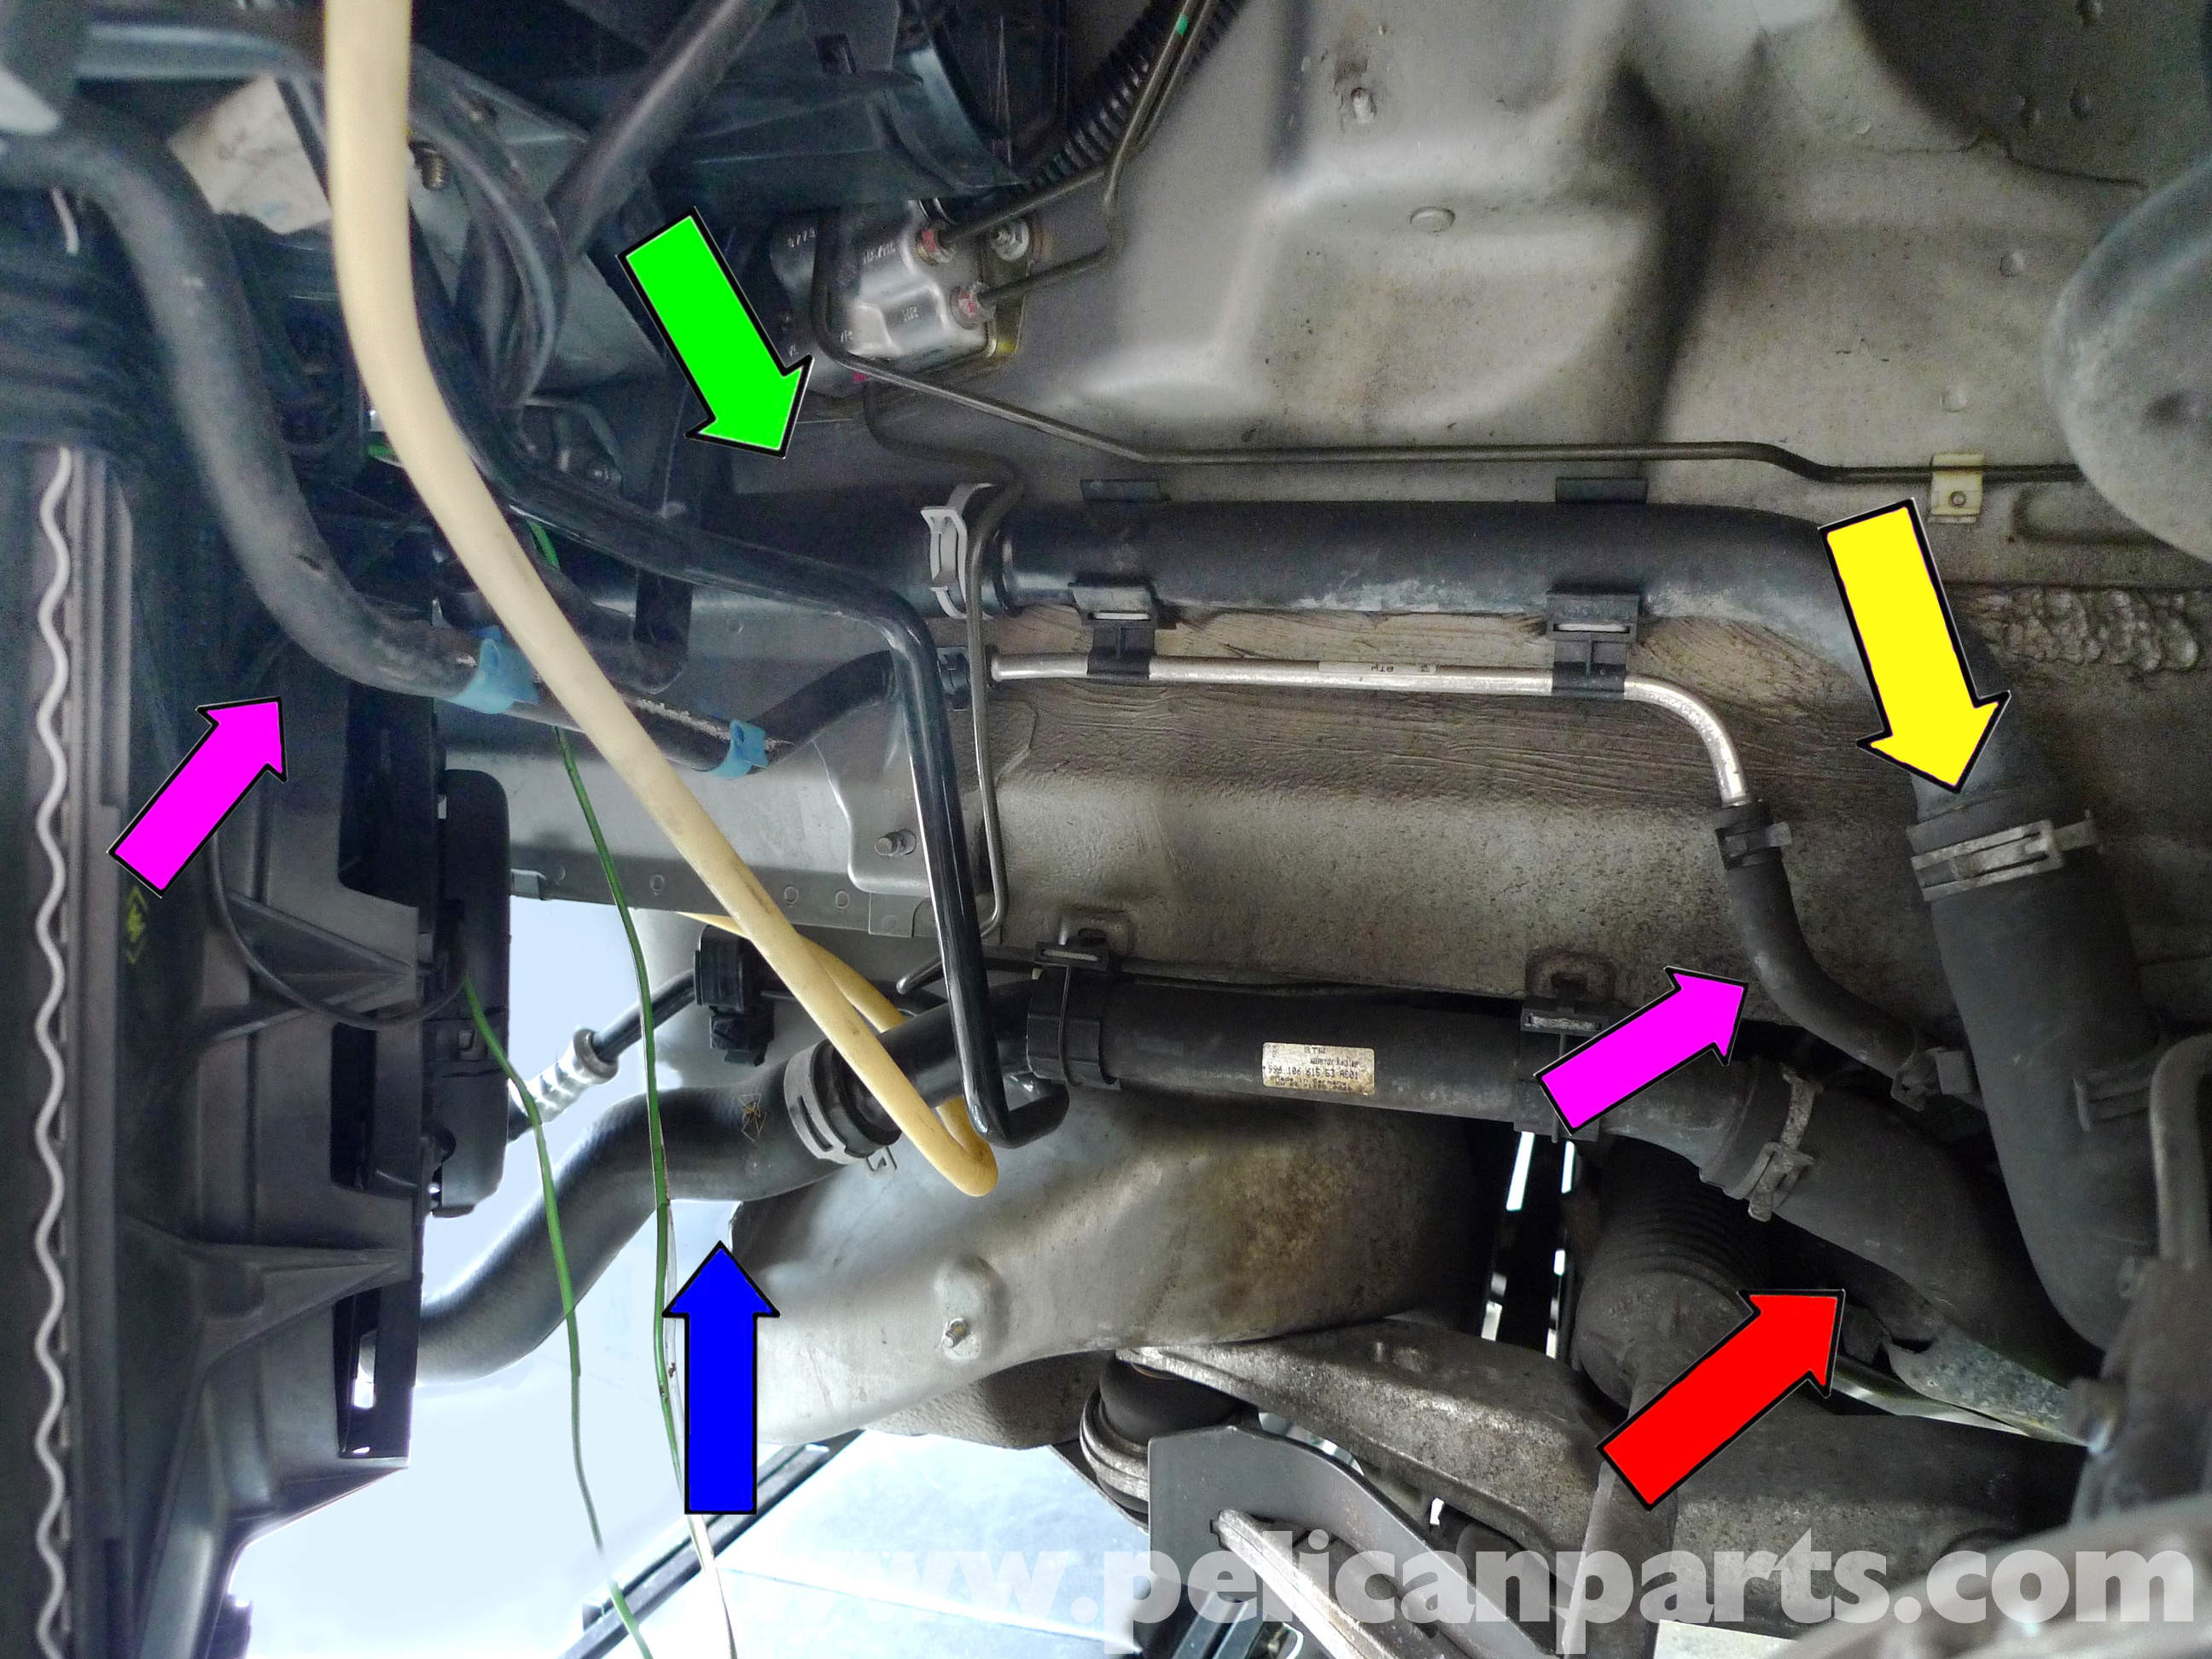 Porsche 996 Engine Diagram Seven Reasons Pdk Is Better Than Manual 1990 911 Carrera Coolant Hose Replacement 1998 2005 997 Of